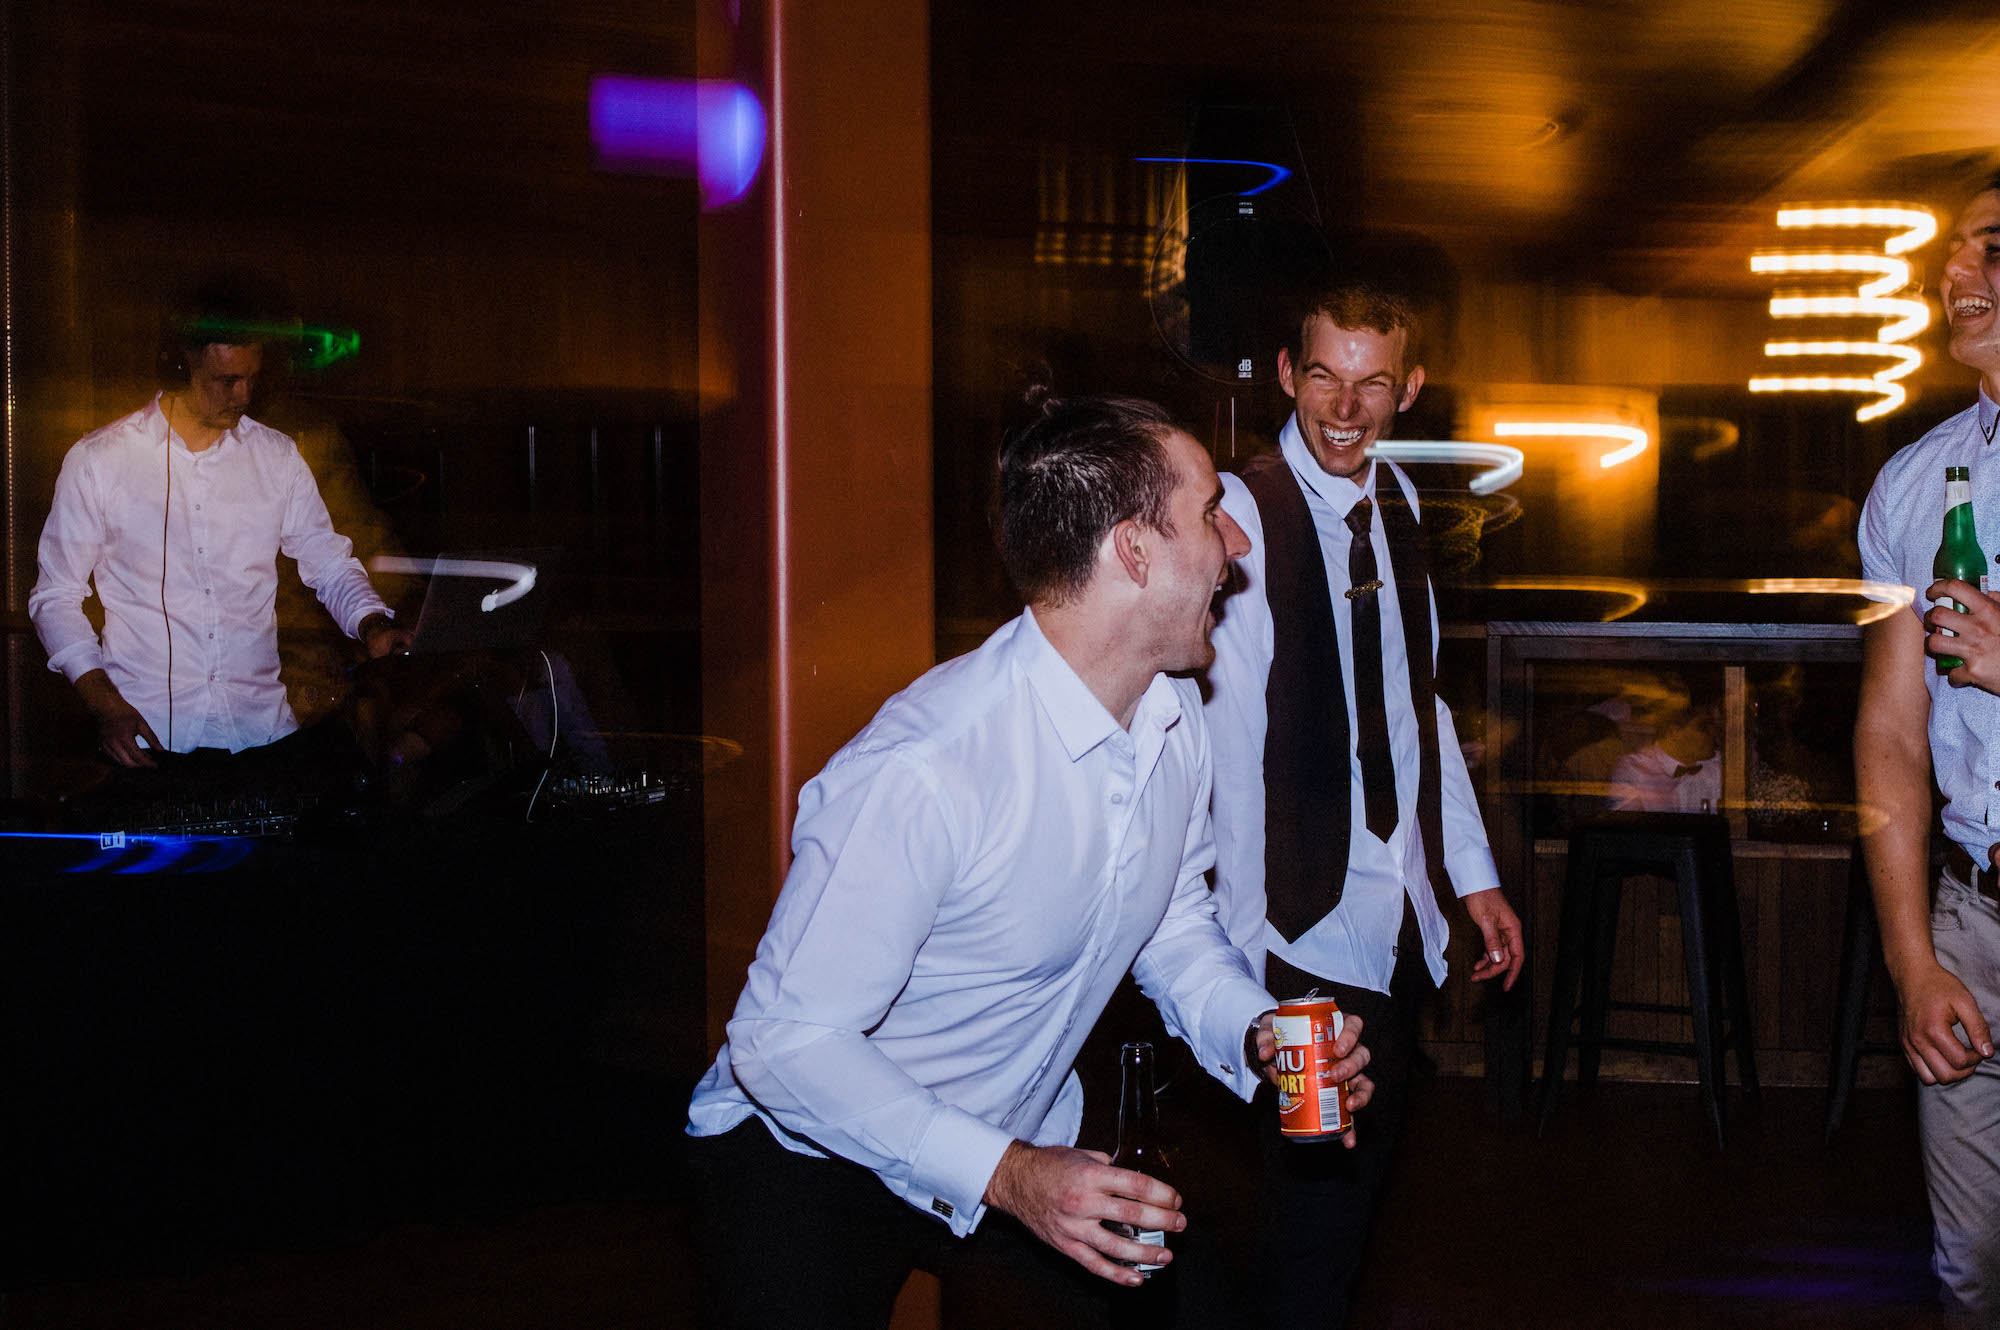 Wedding guests dance together at Quarry Farm.